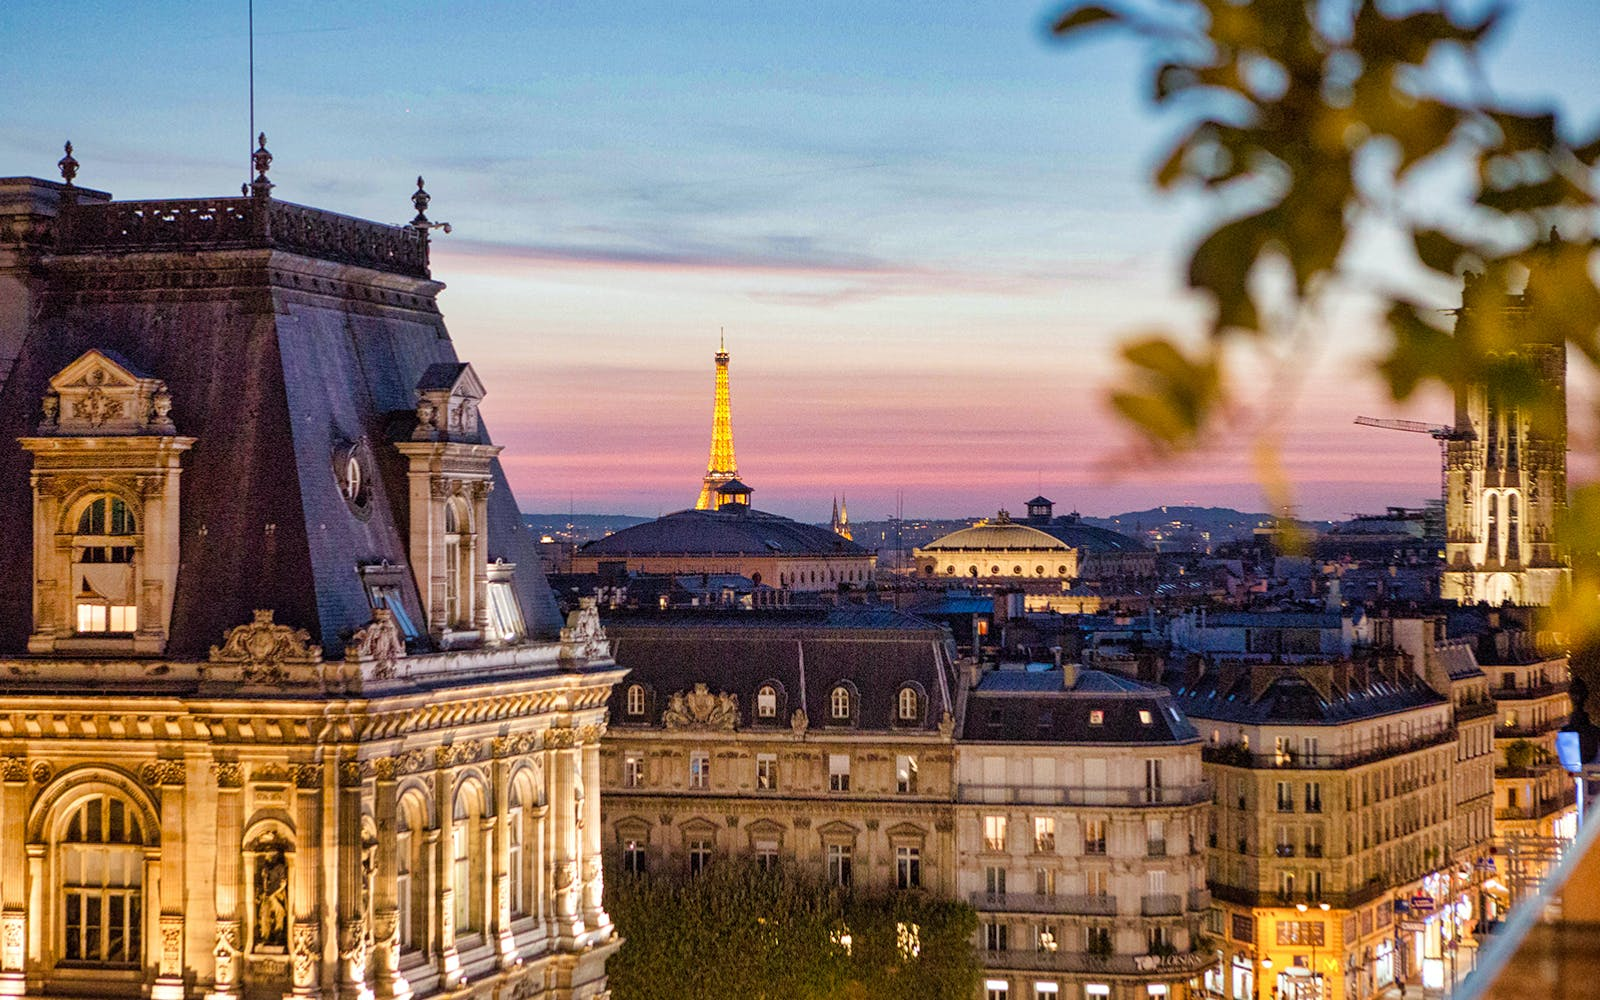 Eiffel Tower Priority Entry + Night City Tour + Seine River Cruise